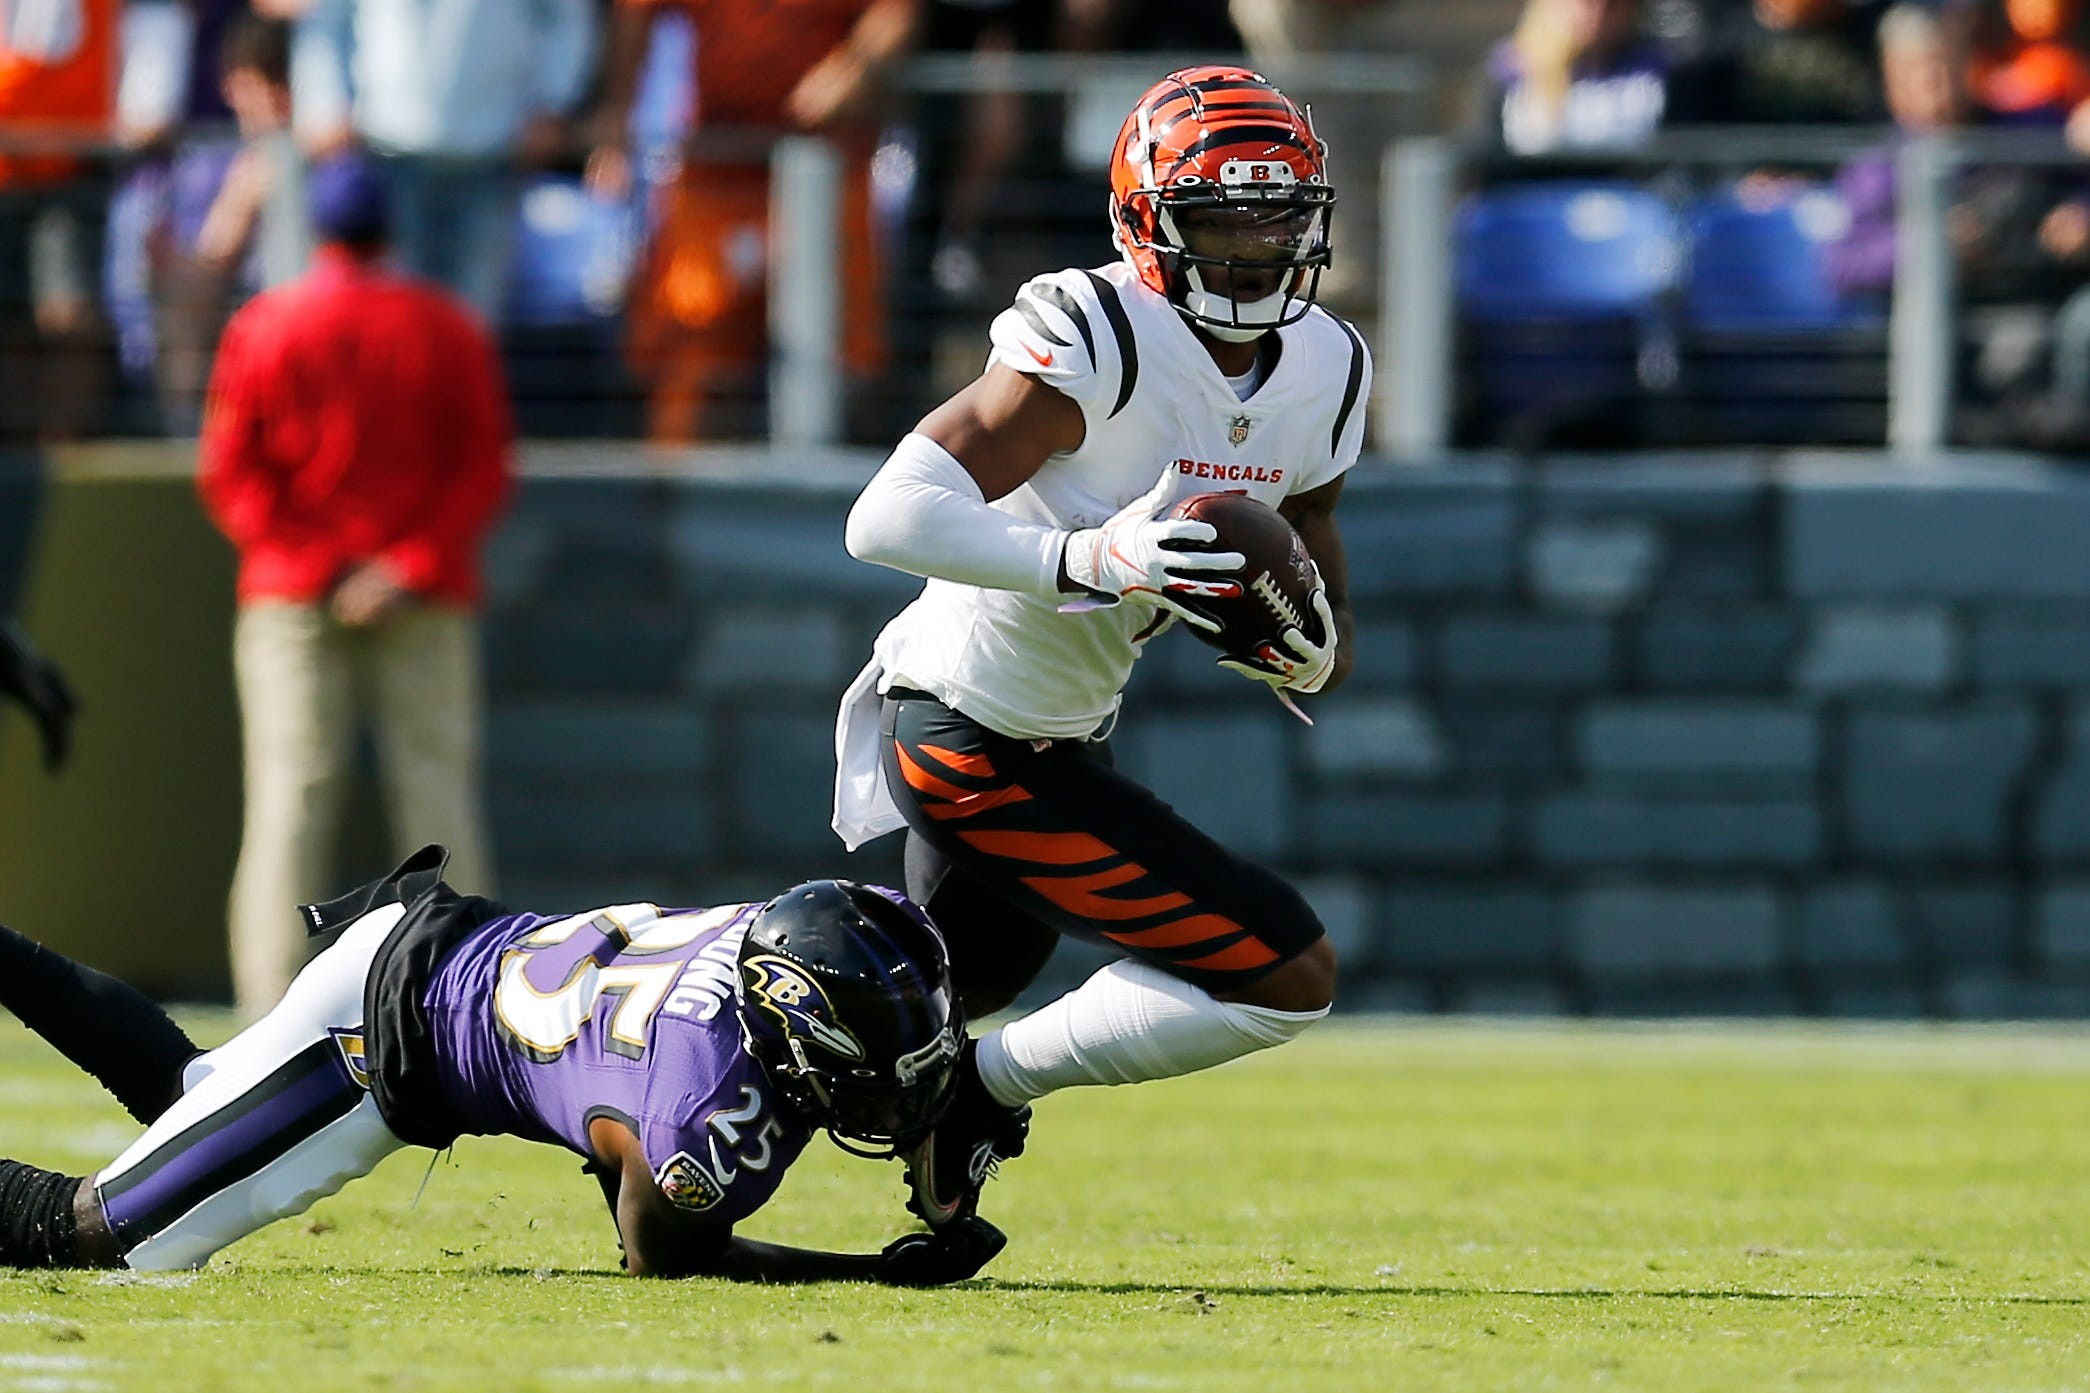 What channel is the game on? Here's how to watch, stream Cincinnati Bengals vs. New York Jets